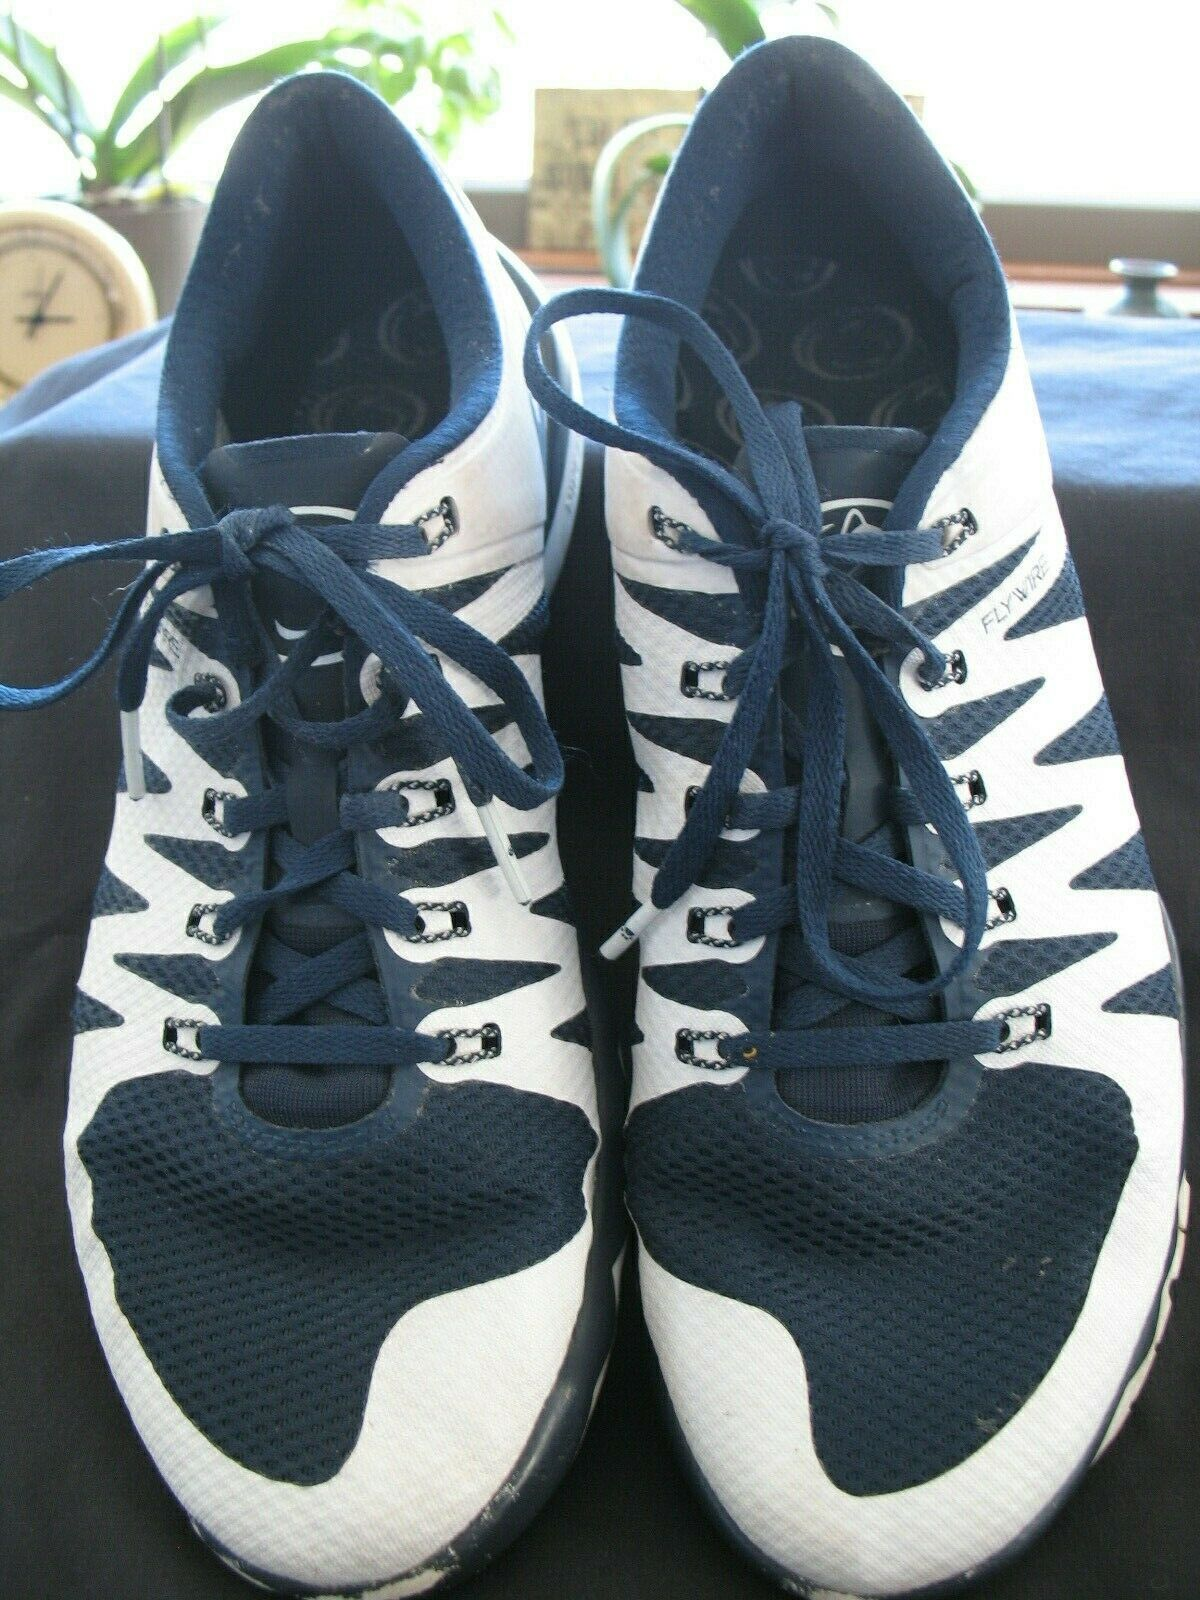 Nike Trainer Free 5.0 V6 AMP Athlete Ex Sneakers  723939 410 size 9.5 Penn State